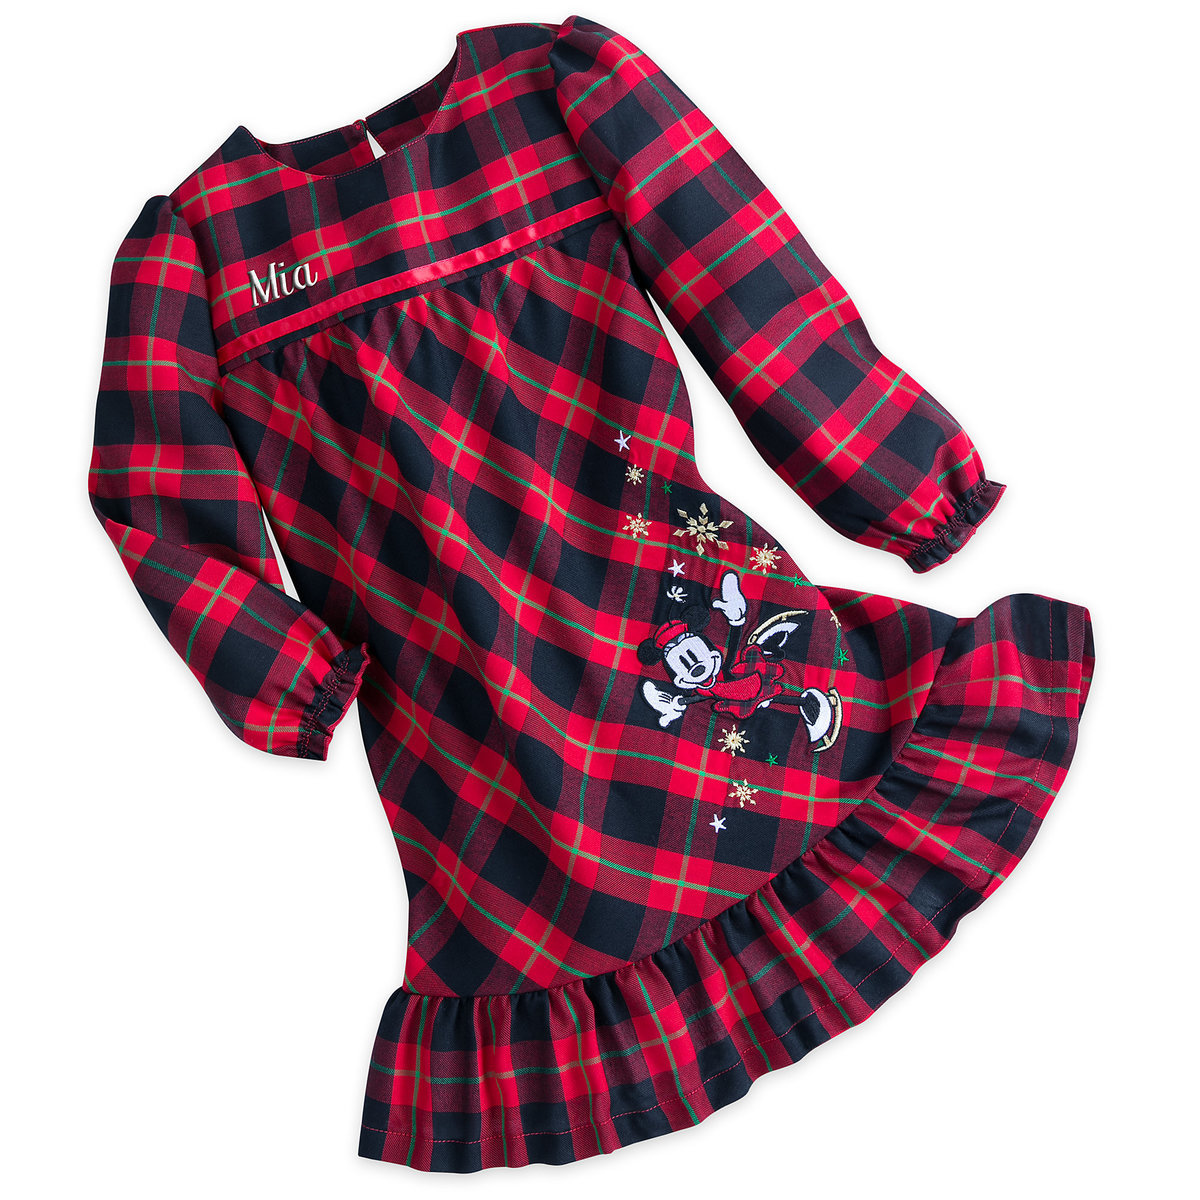 Minnie Mouse Holiday Plaid Nightshirt for Girls - Personalizable